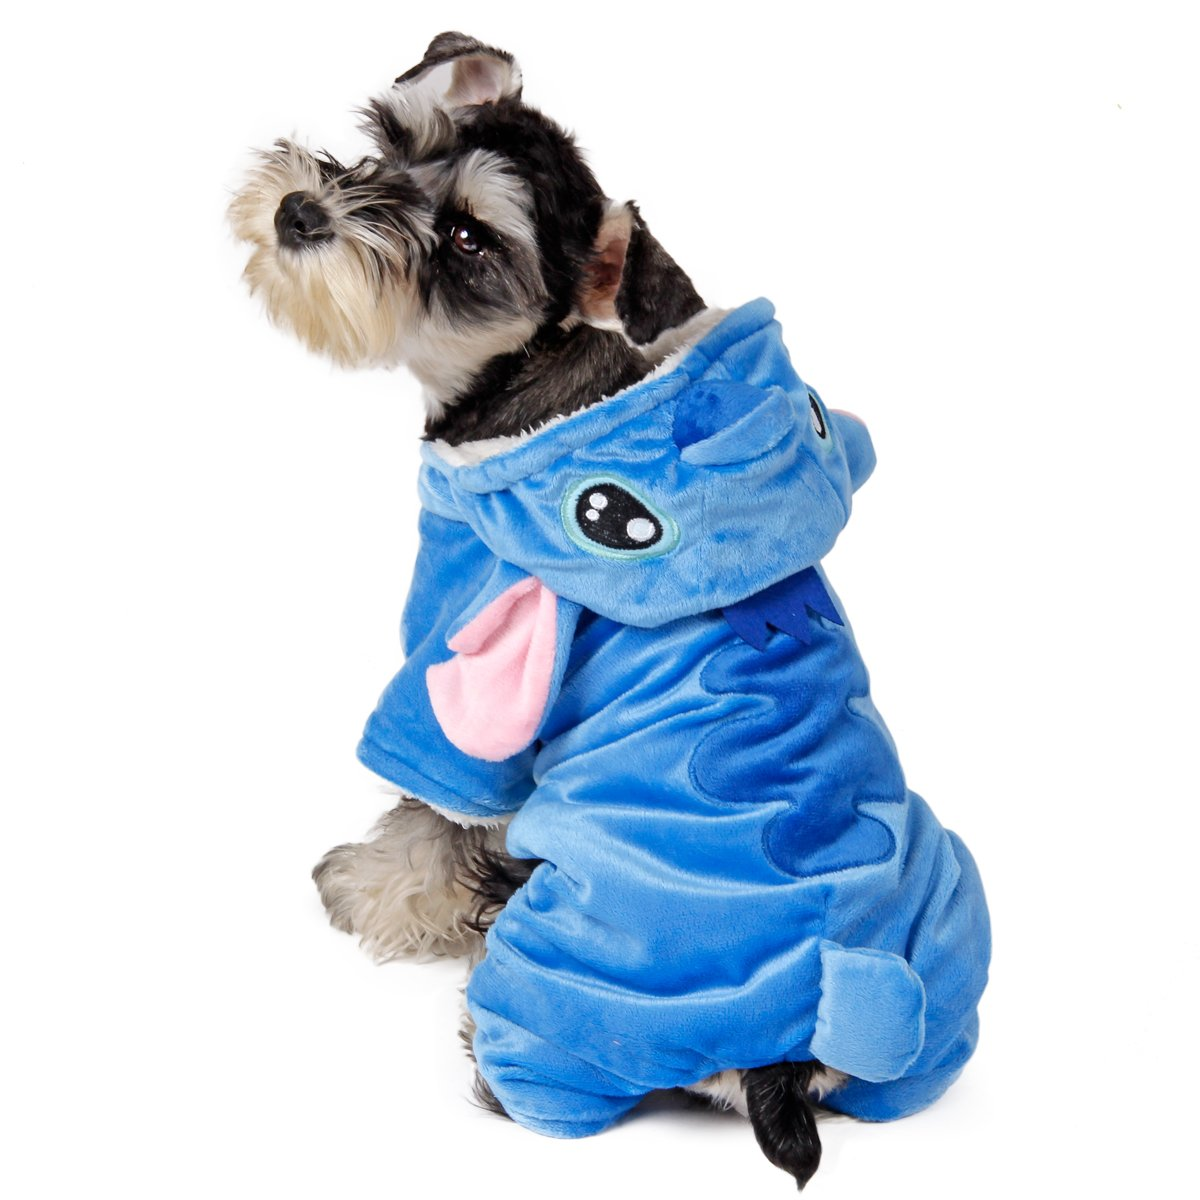 Speedy Pet Dog Clothes Cat Apparel Adorable Costume Double Layer Soft Wool Fabric and Fleece Size XL